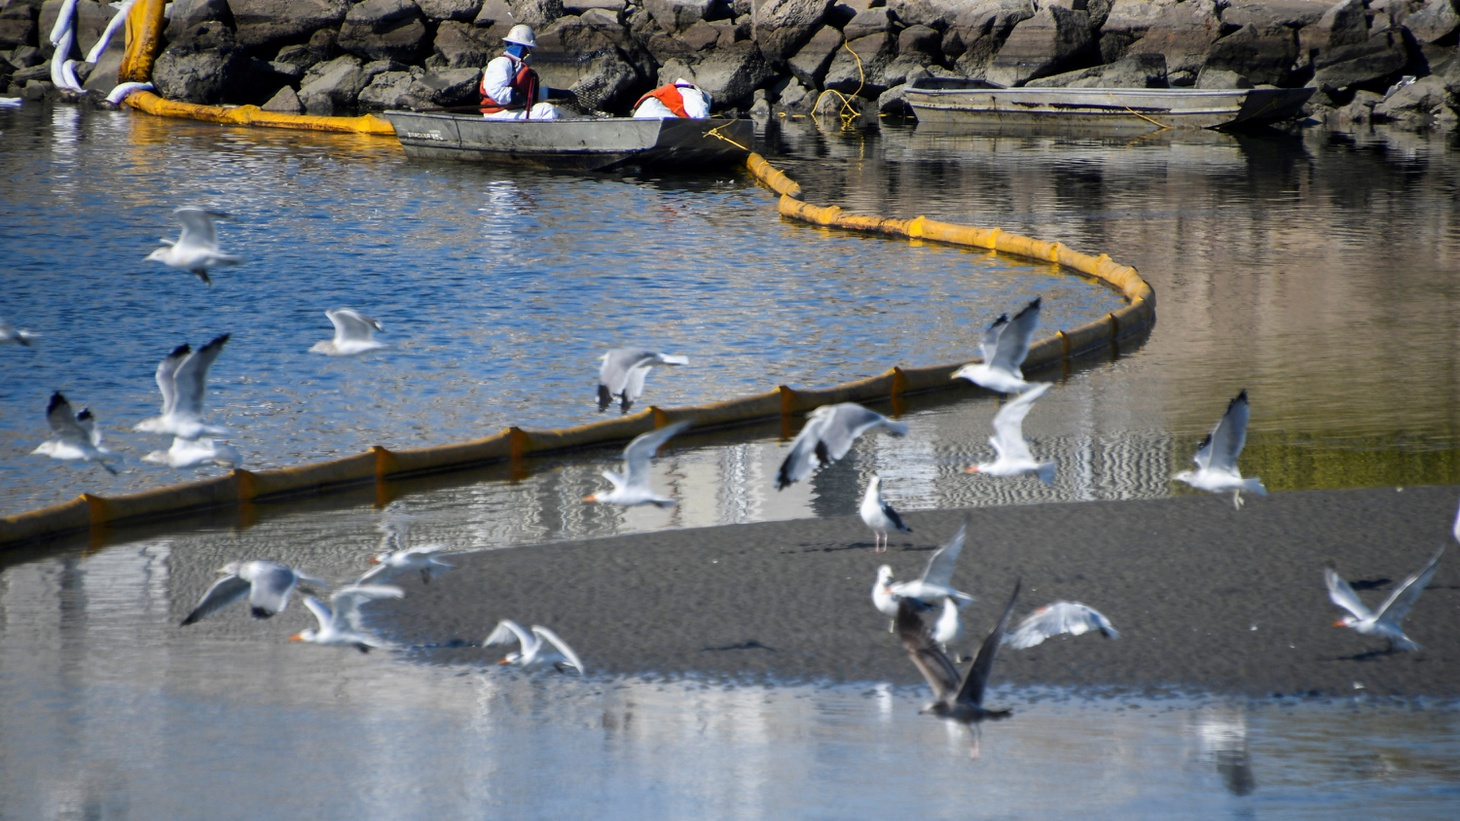 A clean-up team works on clearing the oil slicks at the Talbert Channel after a major oil spill off the coast of California has come ashore in Huntington Beach, California, U.S. October 3, 2021.